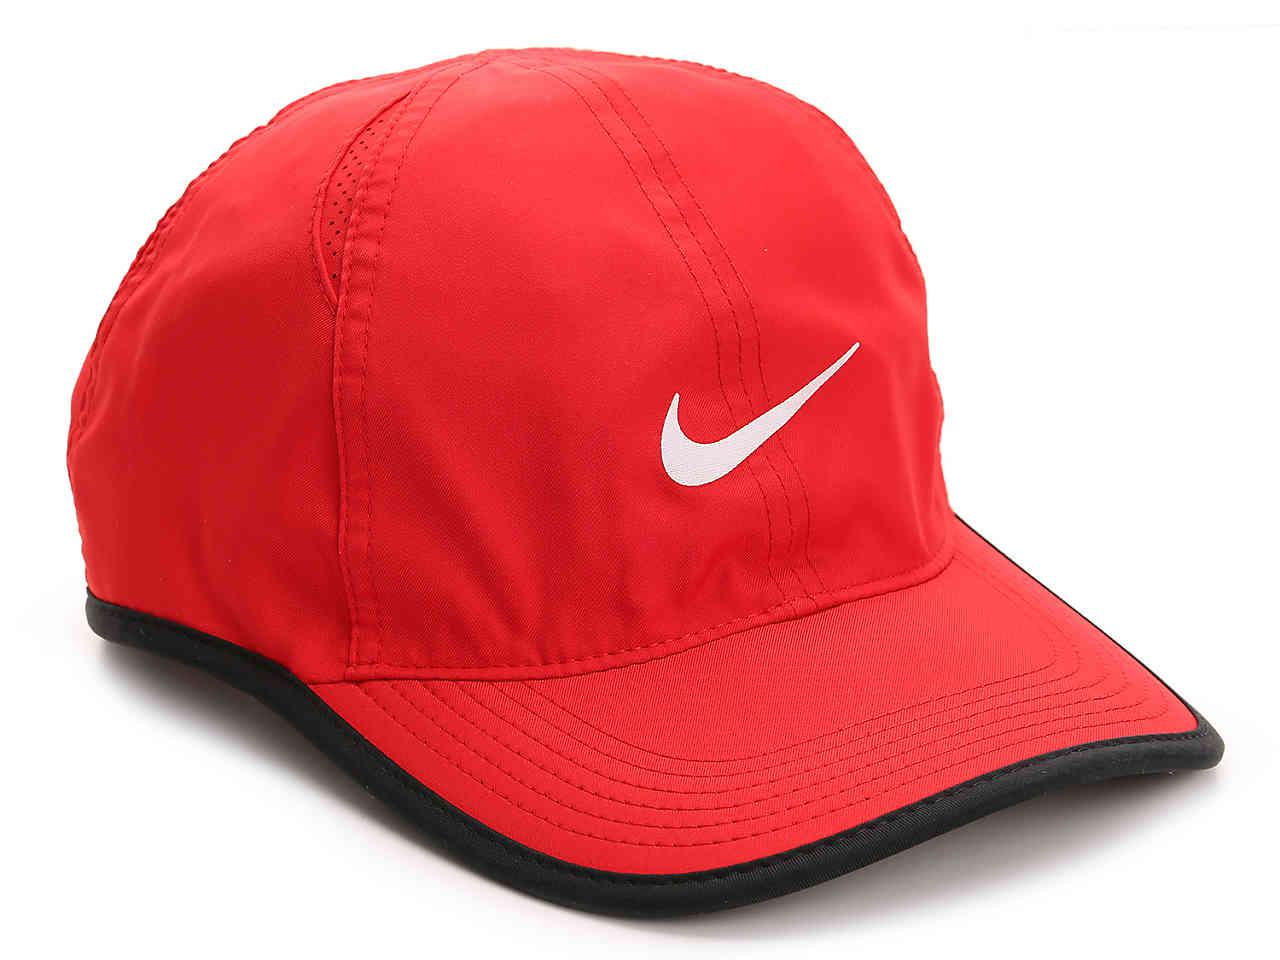 8ae5e23d020 Lyst - Nike Aerobill Featherlight Baseball Cap in Red for Men